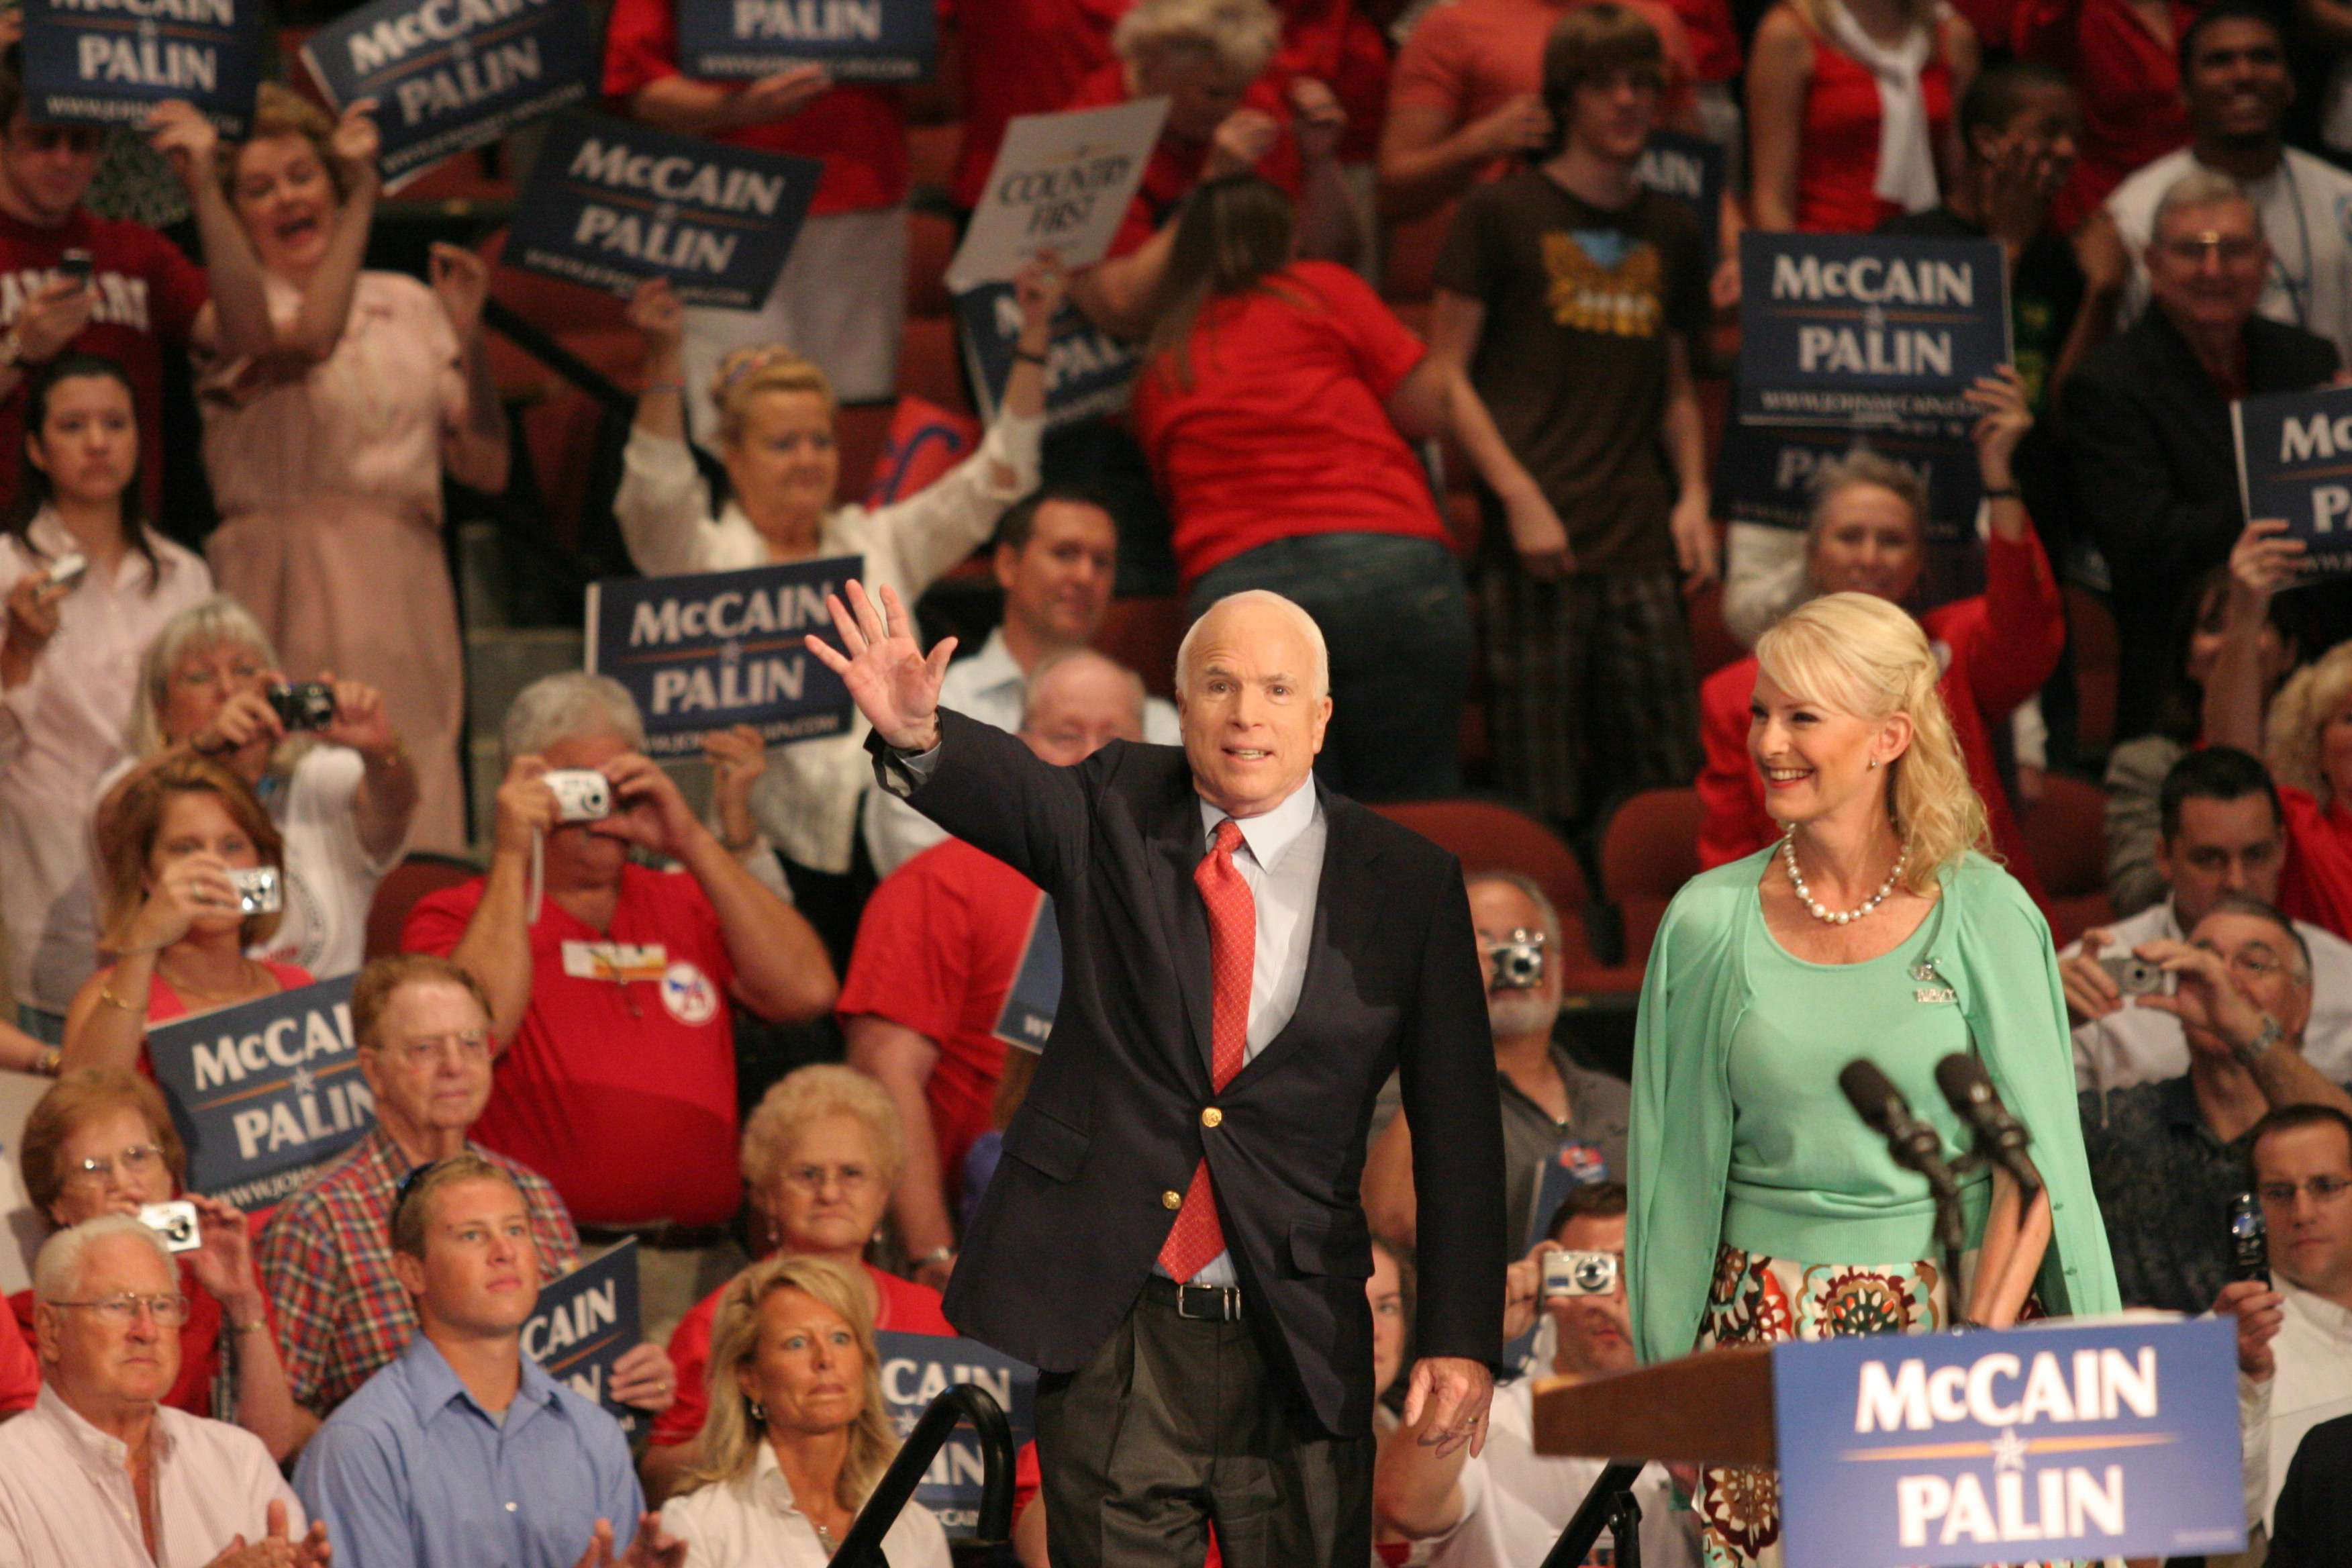 John McCain at the 2008 Republican convention